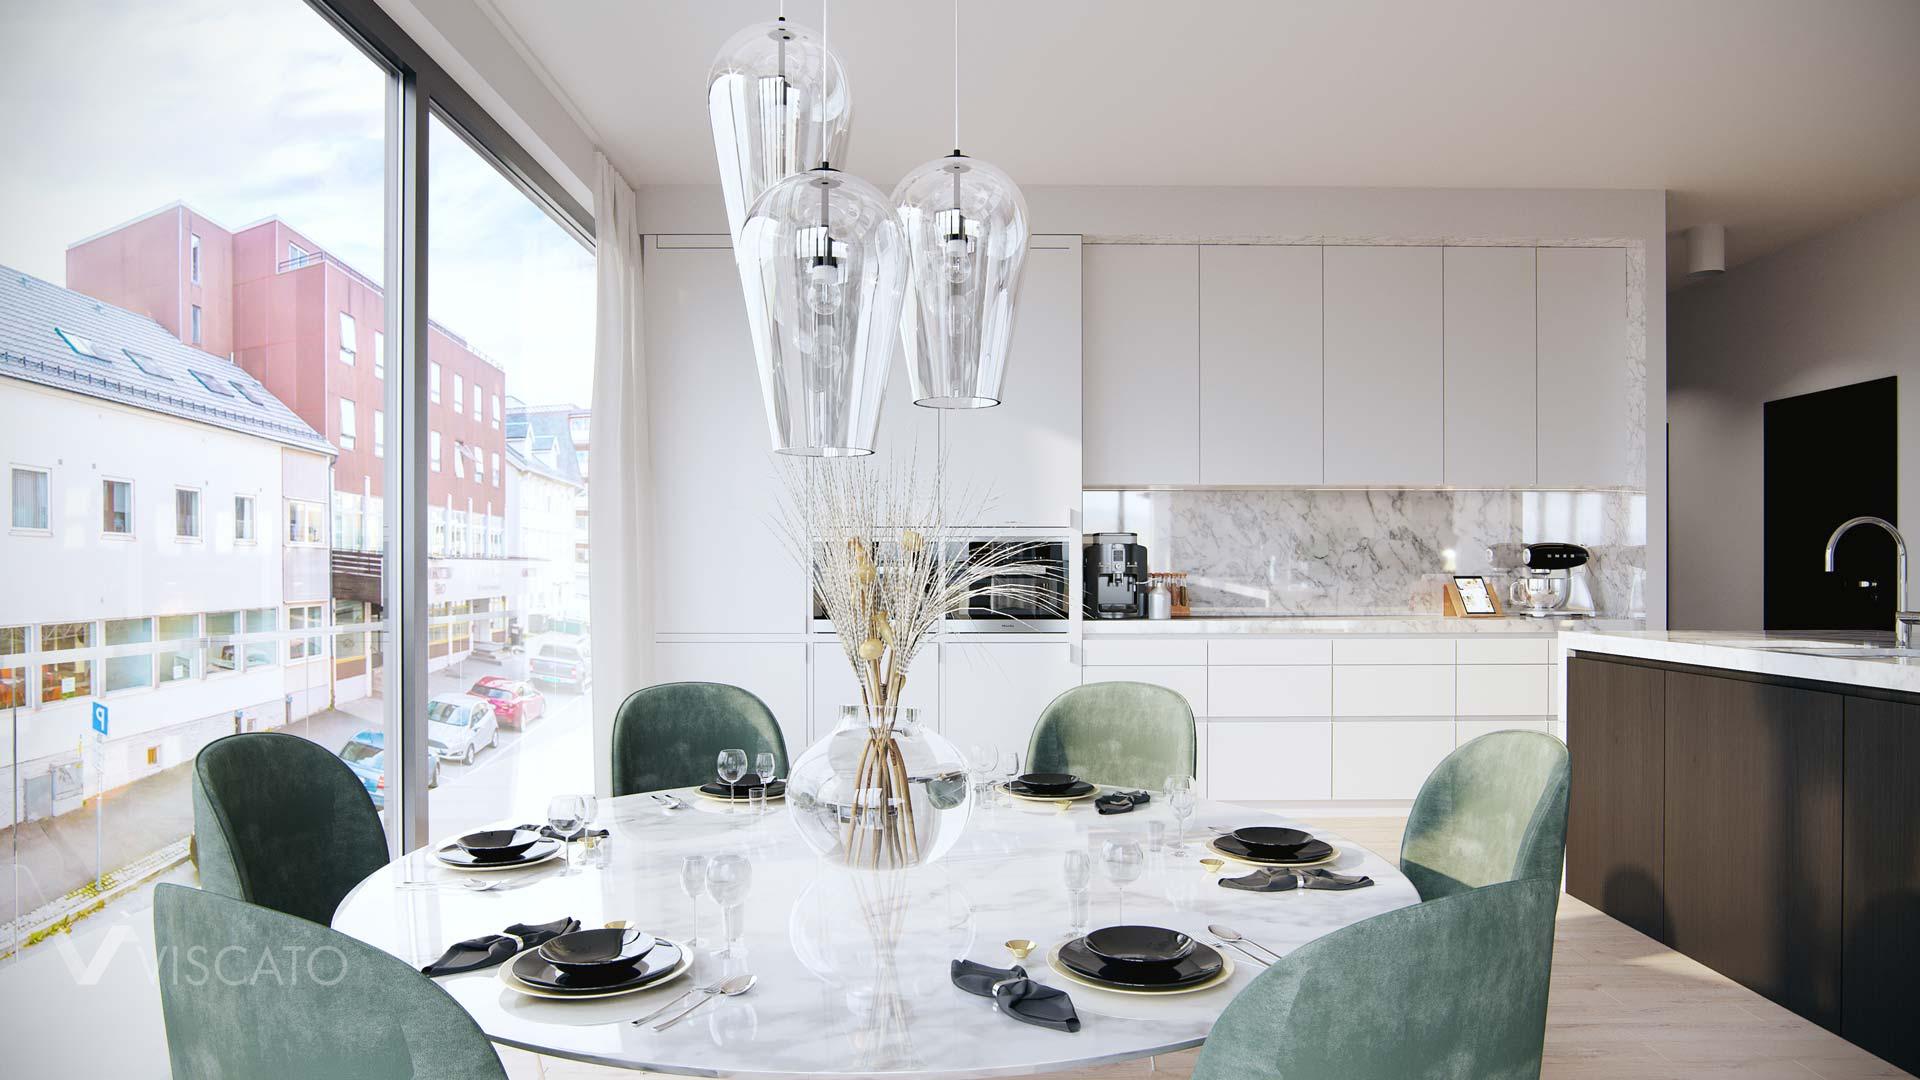 Large round table with transparent lamps, 3D interiors